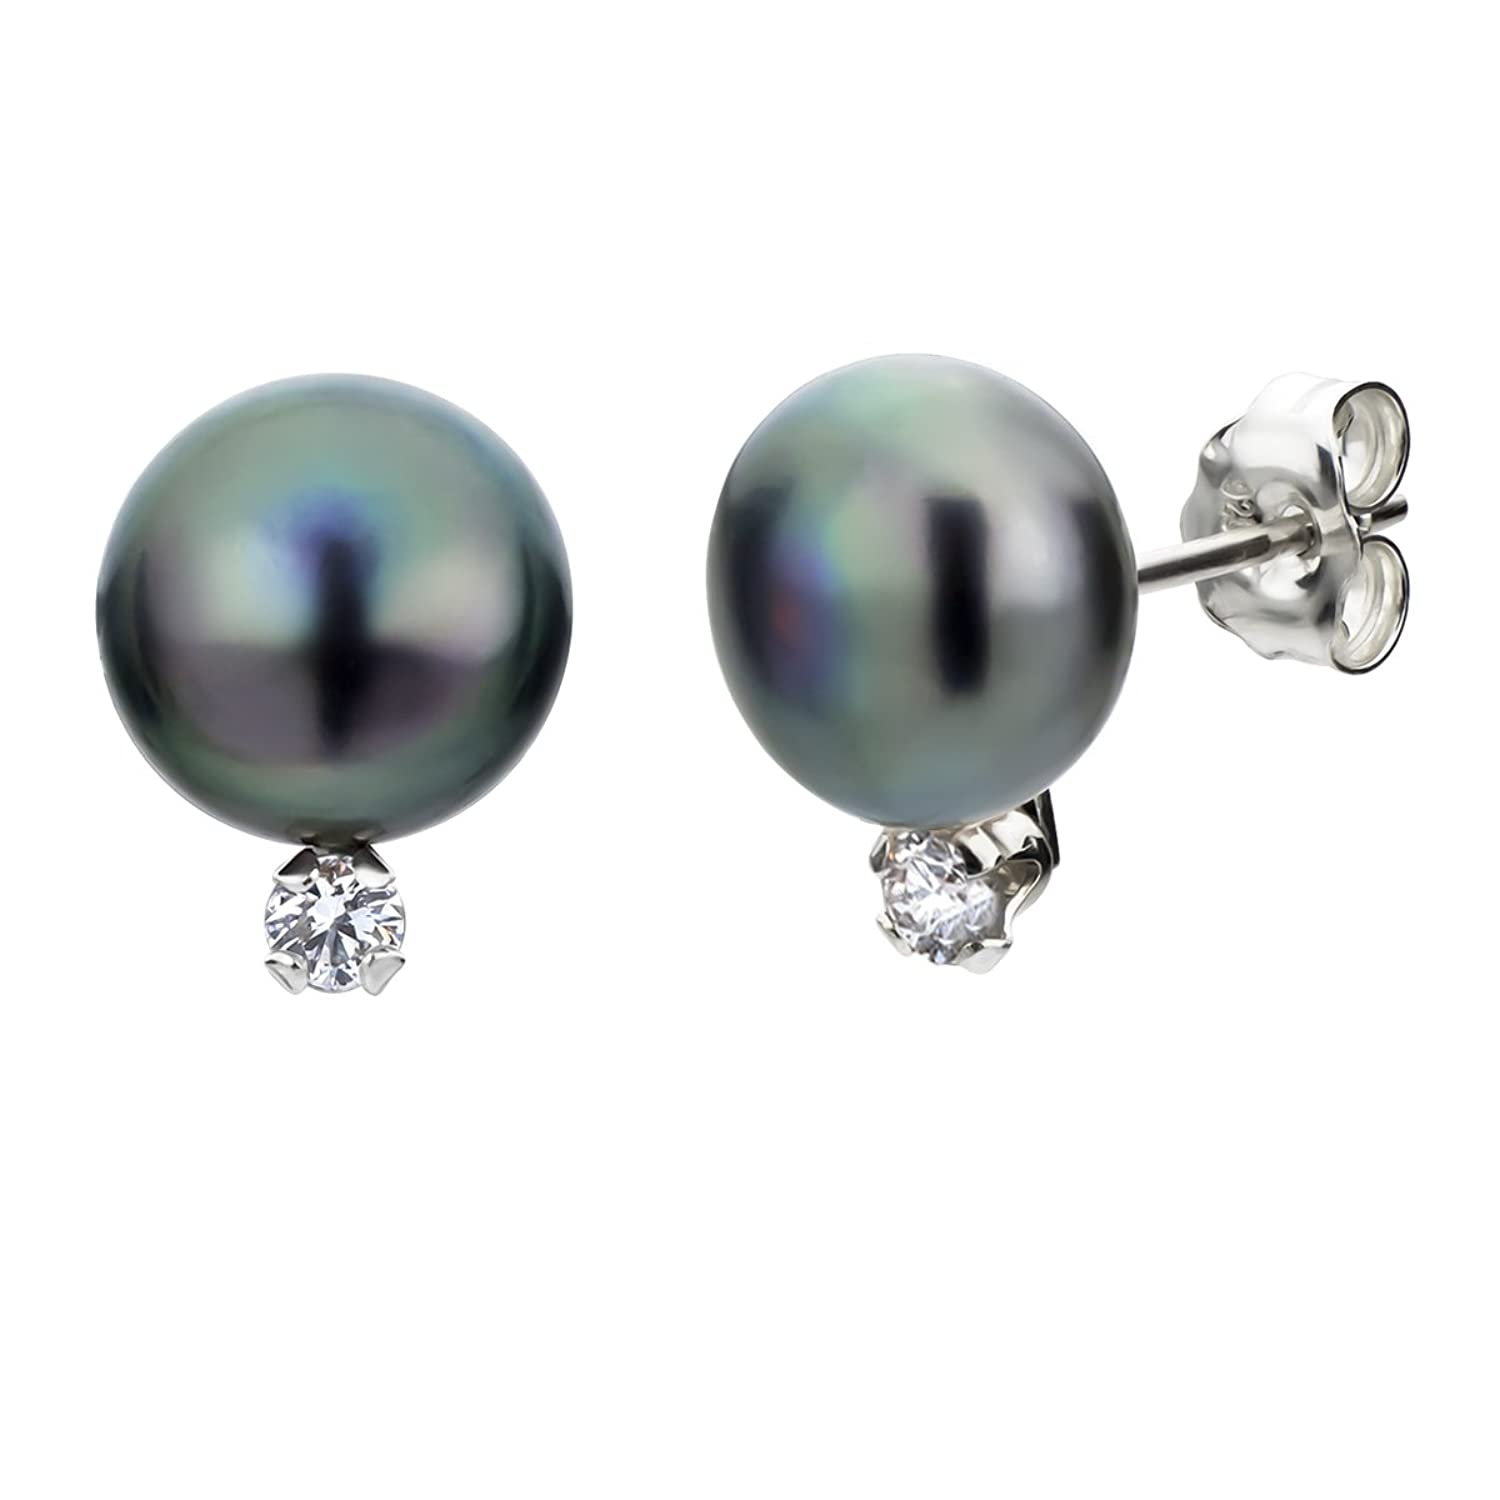 S. Silver 1/10cttw Diamond 8-8.5mm Dyed-black Button Shape Freshwater Cultured Pearl Stud Earrings